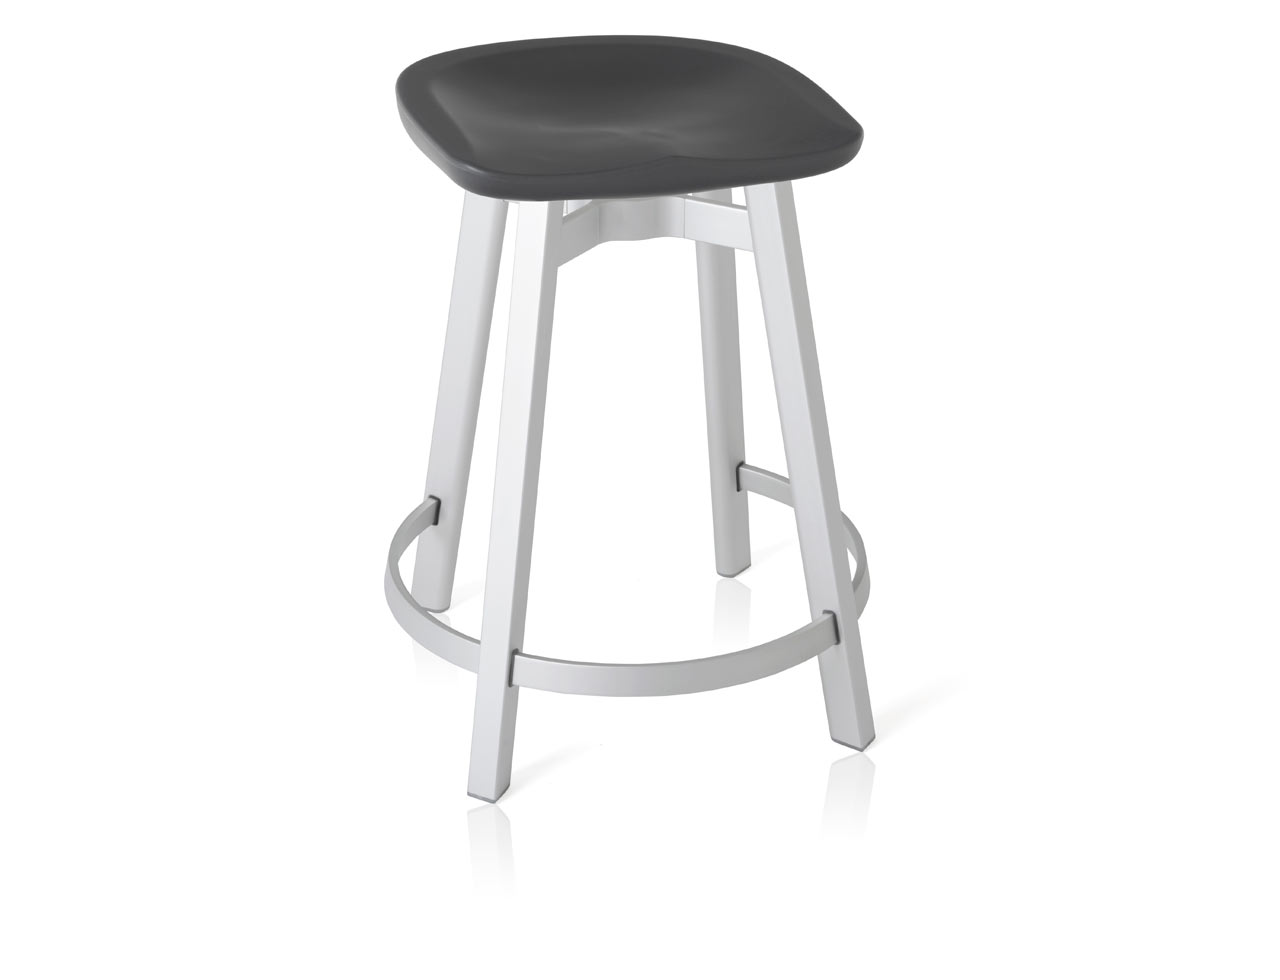 Emeco_SU-Collection-Nendo-Outdoor-Table-Stool-7-counter